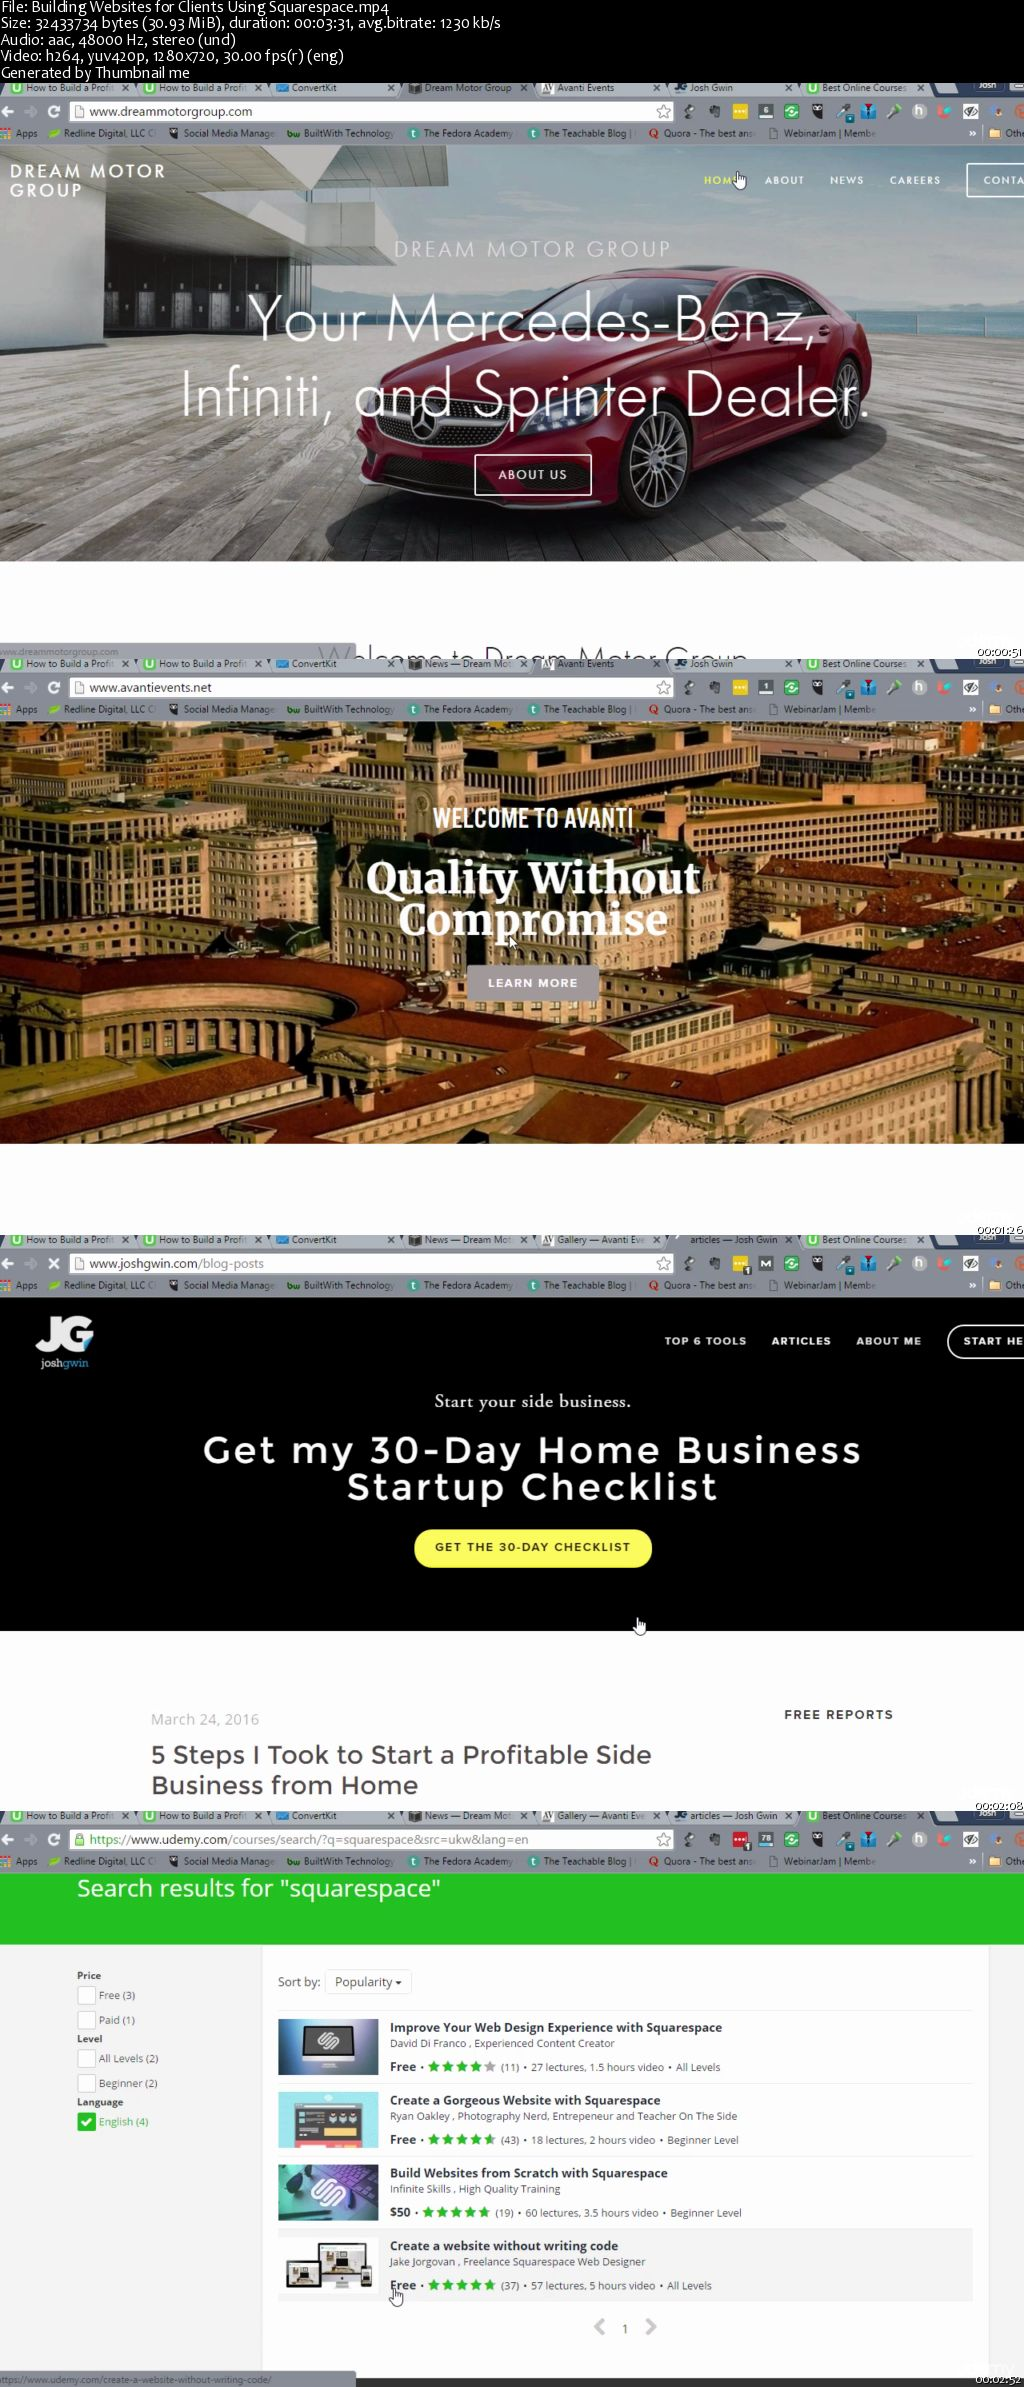 How to Build a Profitable Web Design Business in 30 Days